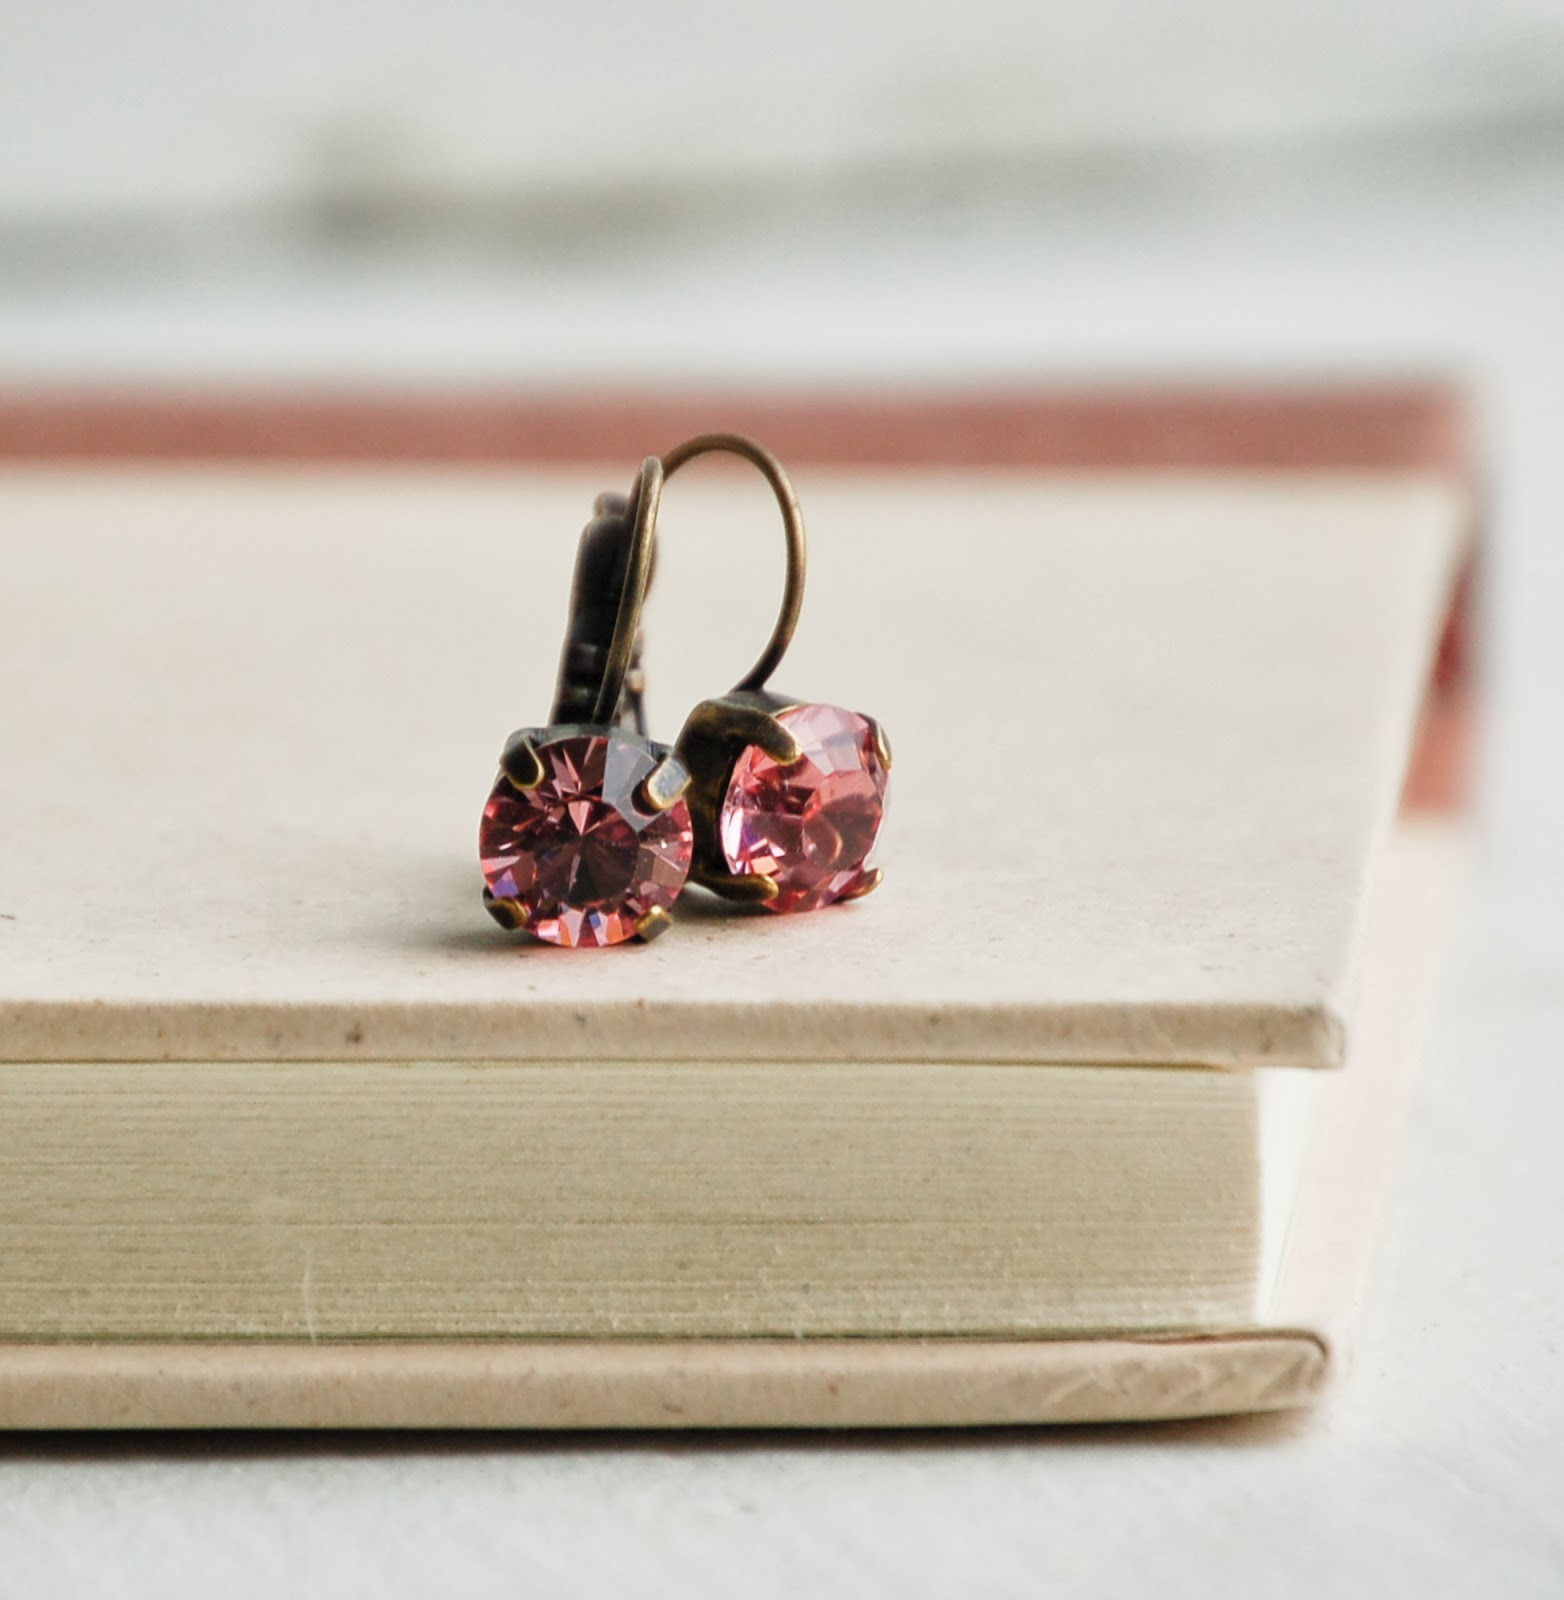 https://www.etsy.com/listing/166579749/pink-crystal-rhinestones-earrings-rose?ref=shop_home_active_3&ga_search_query=lever%2Bback%2Brhinestone